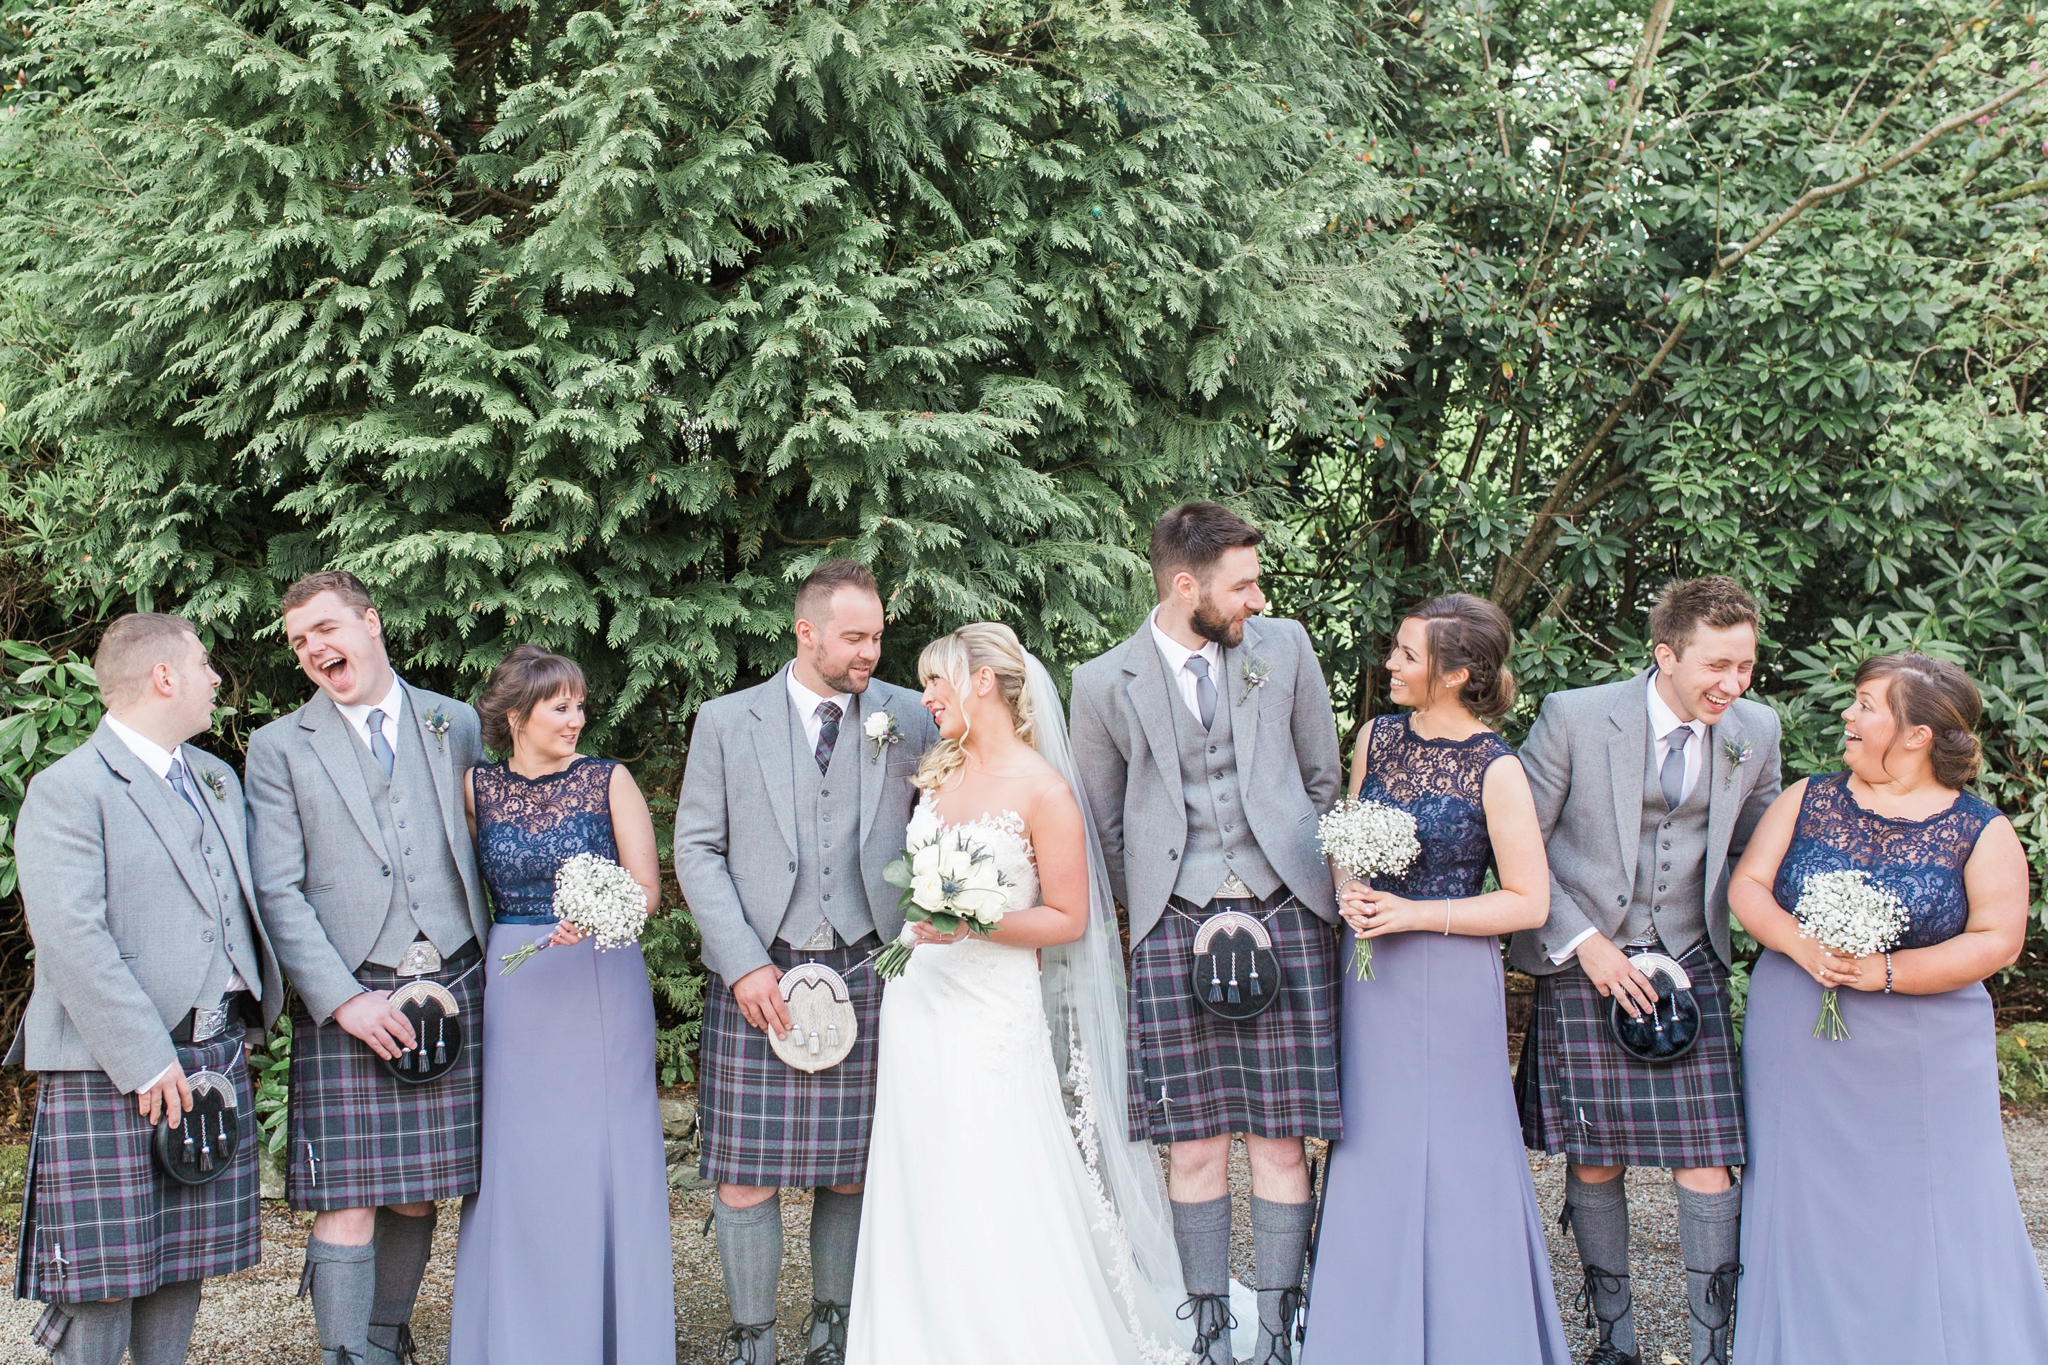 Suzanne_li_photography_Roman_camp_wedding_0015.jpg